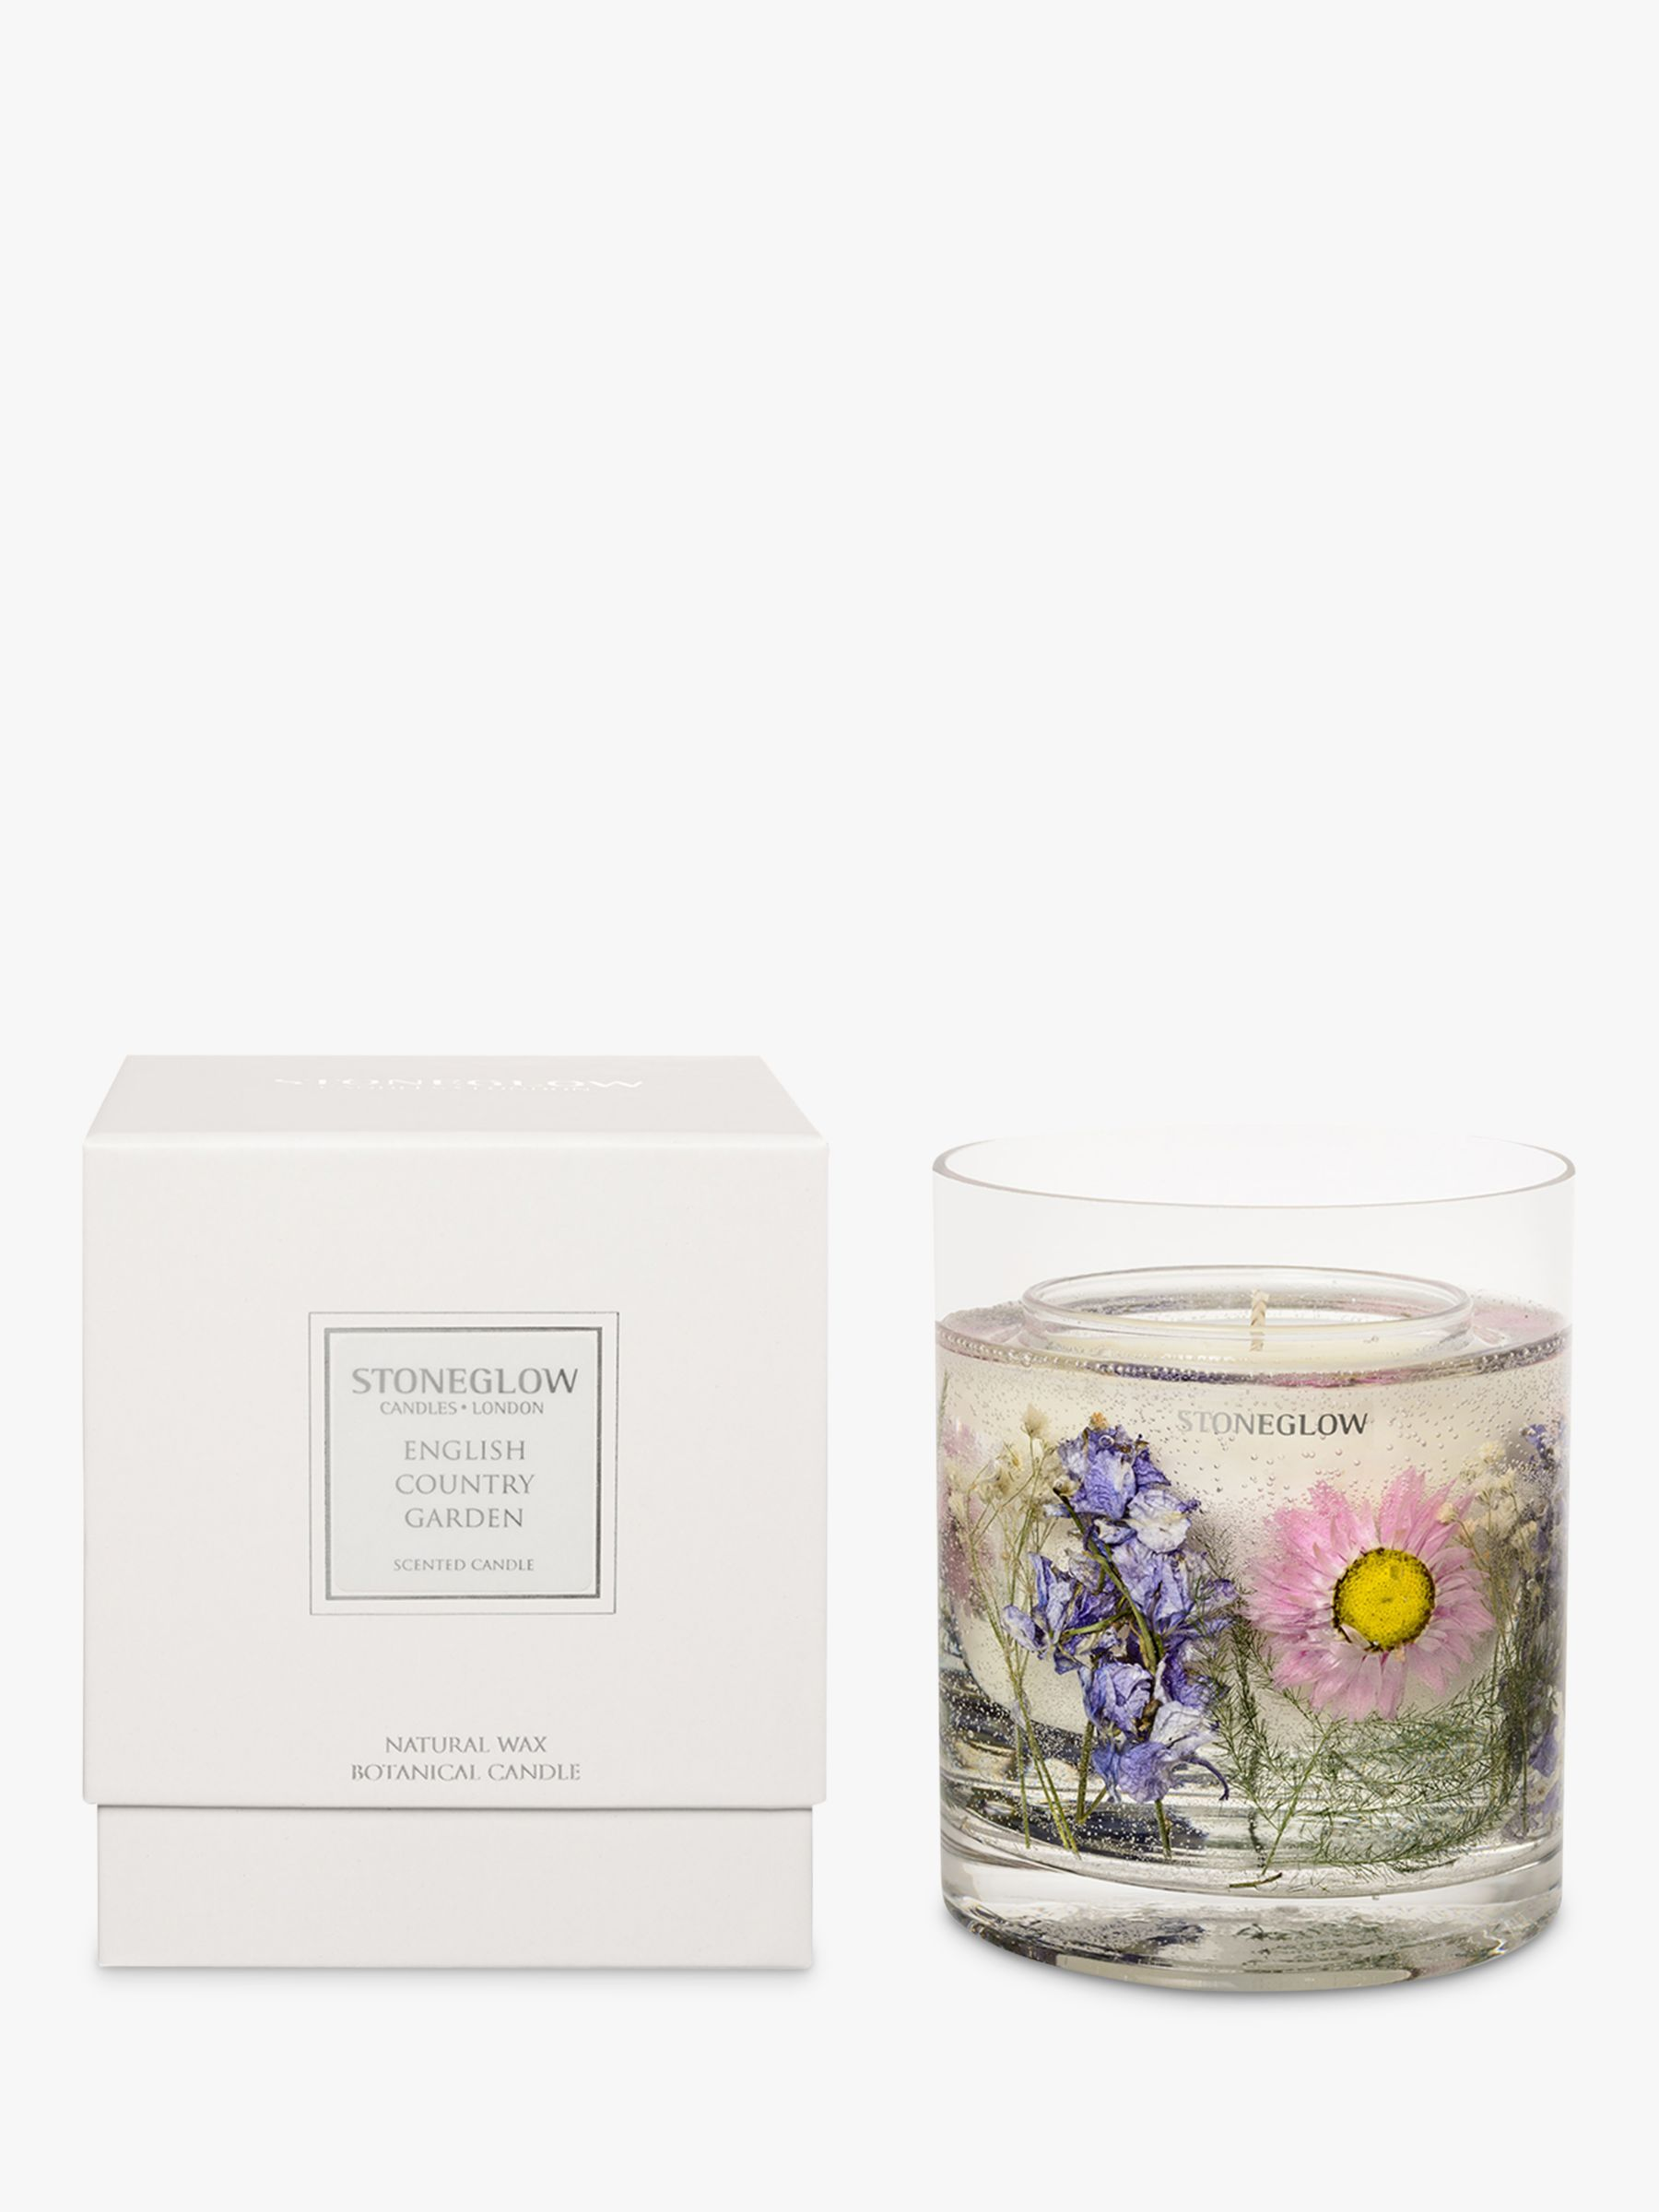 Stoneglow Stoneglow English Country Garden Scented Gel Candle